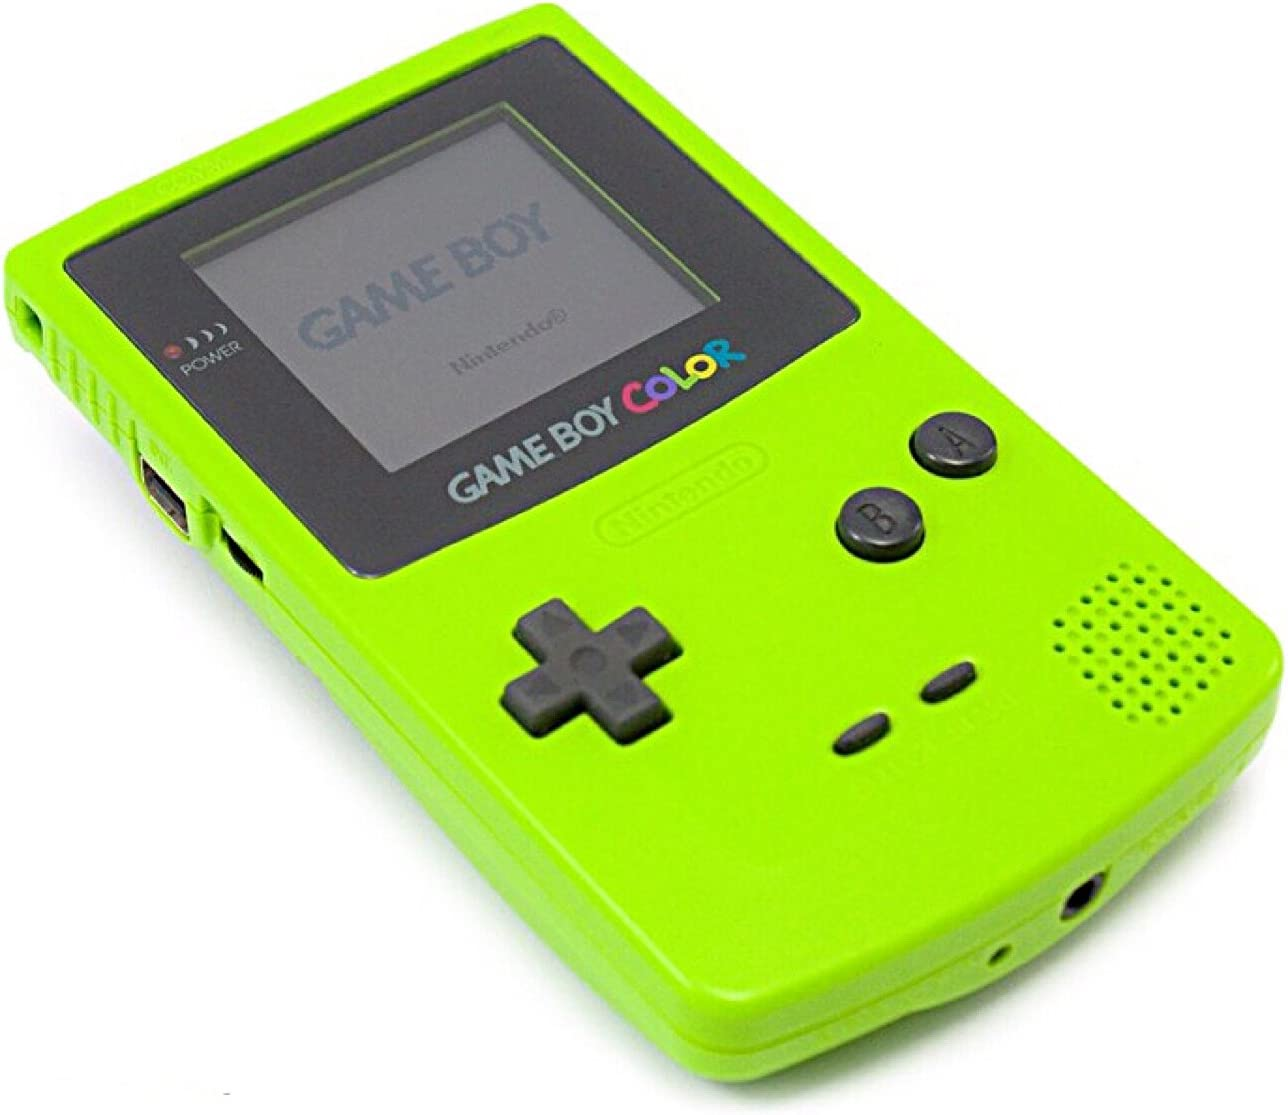 Game boy color kaufen - Amazon Com Game Boy Color Atomic Purple Nintendo Game Boy Color Video Games